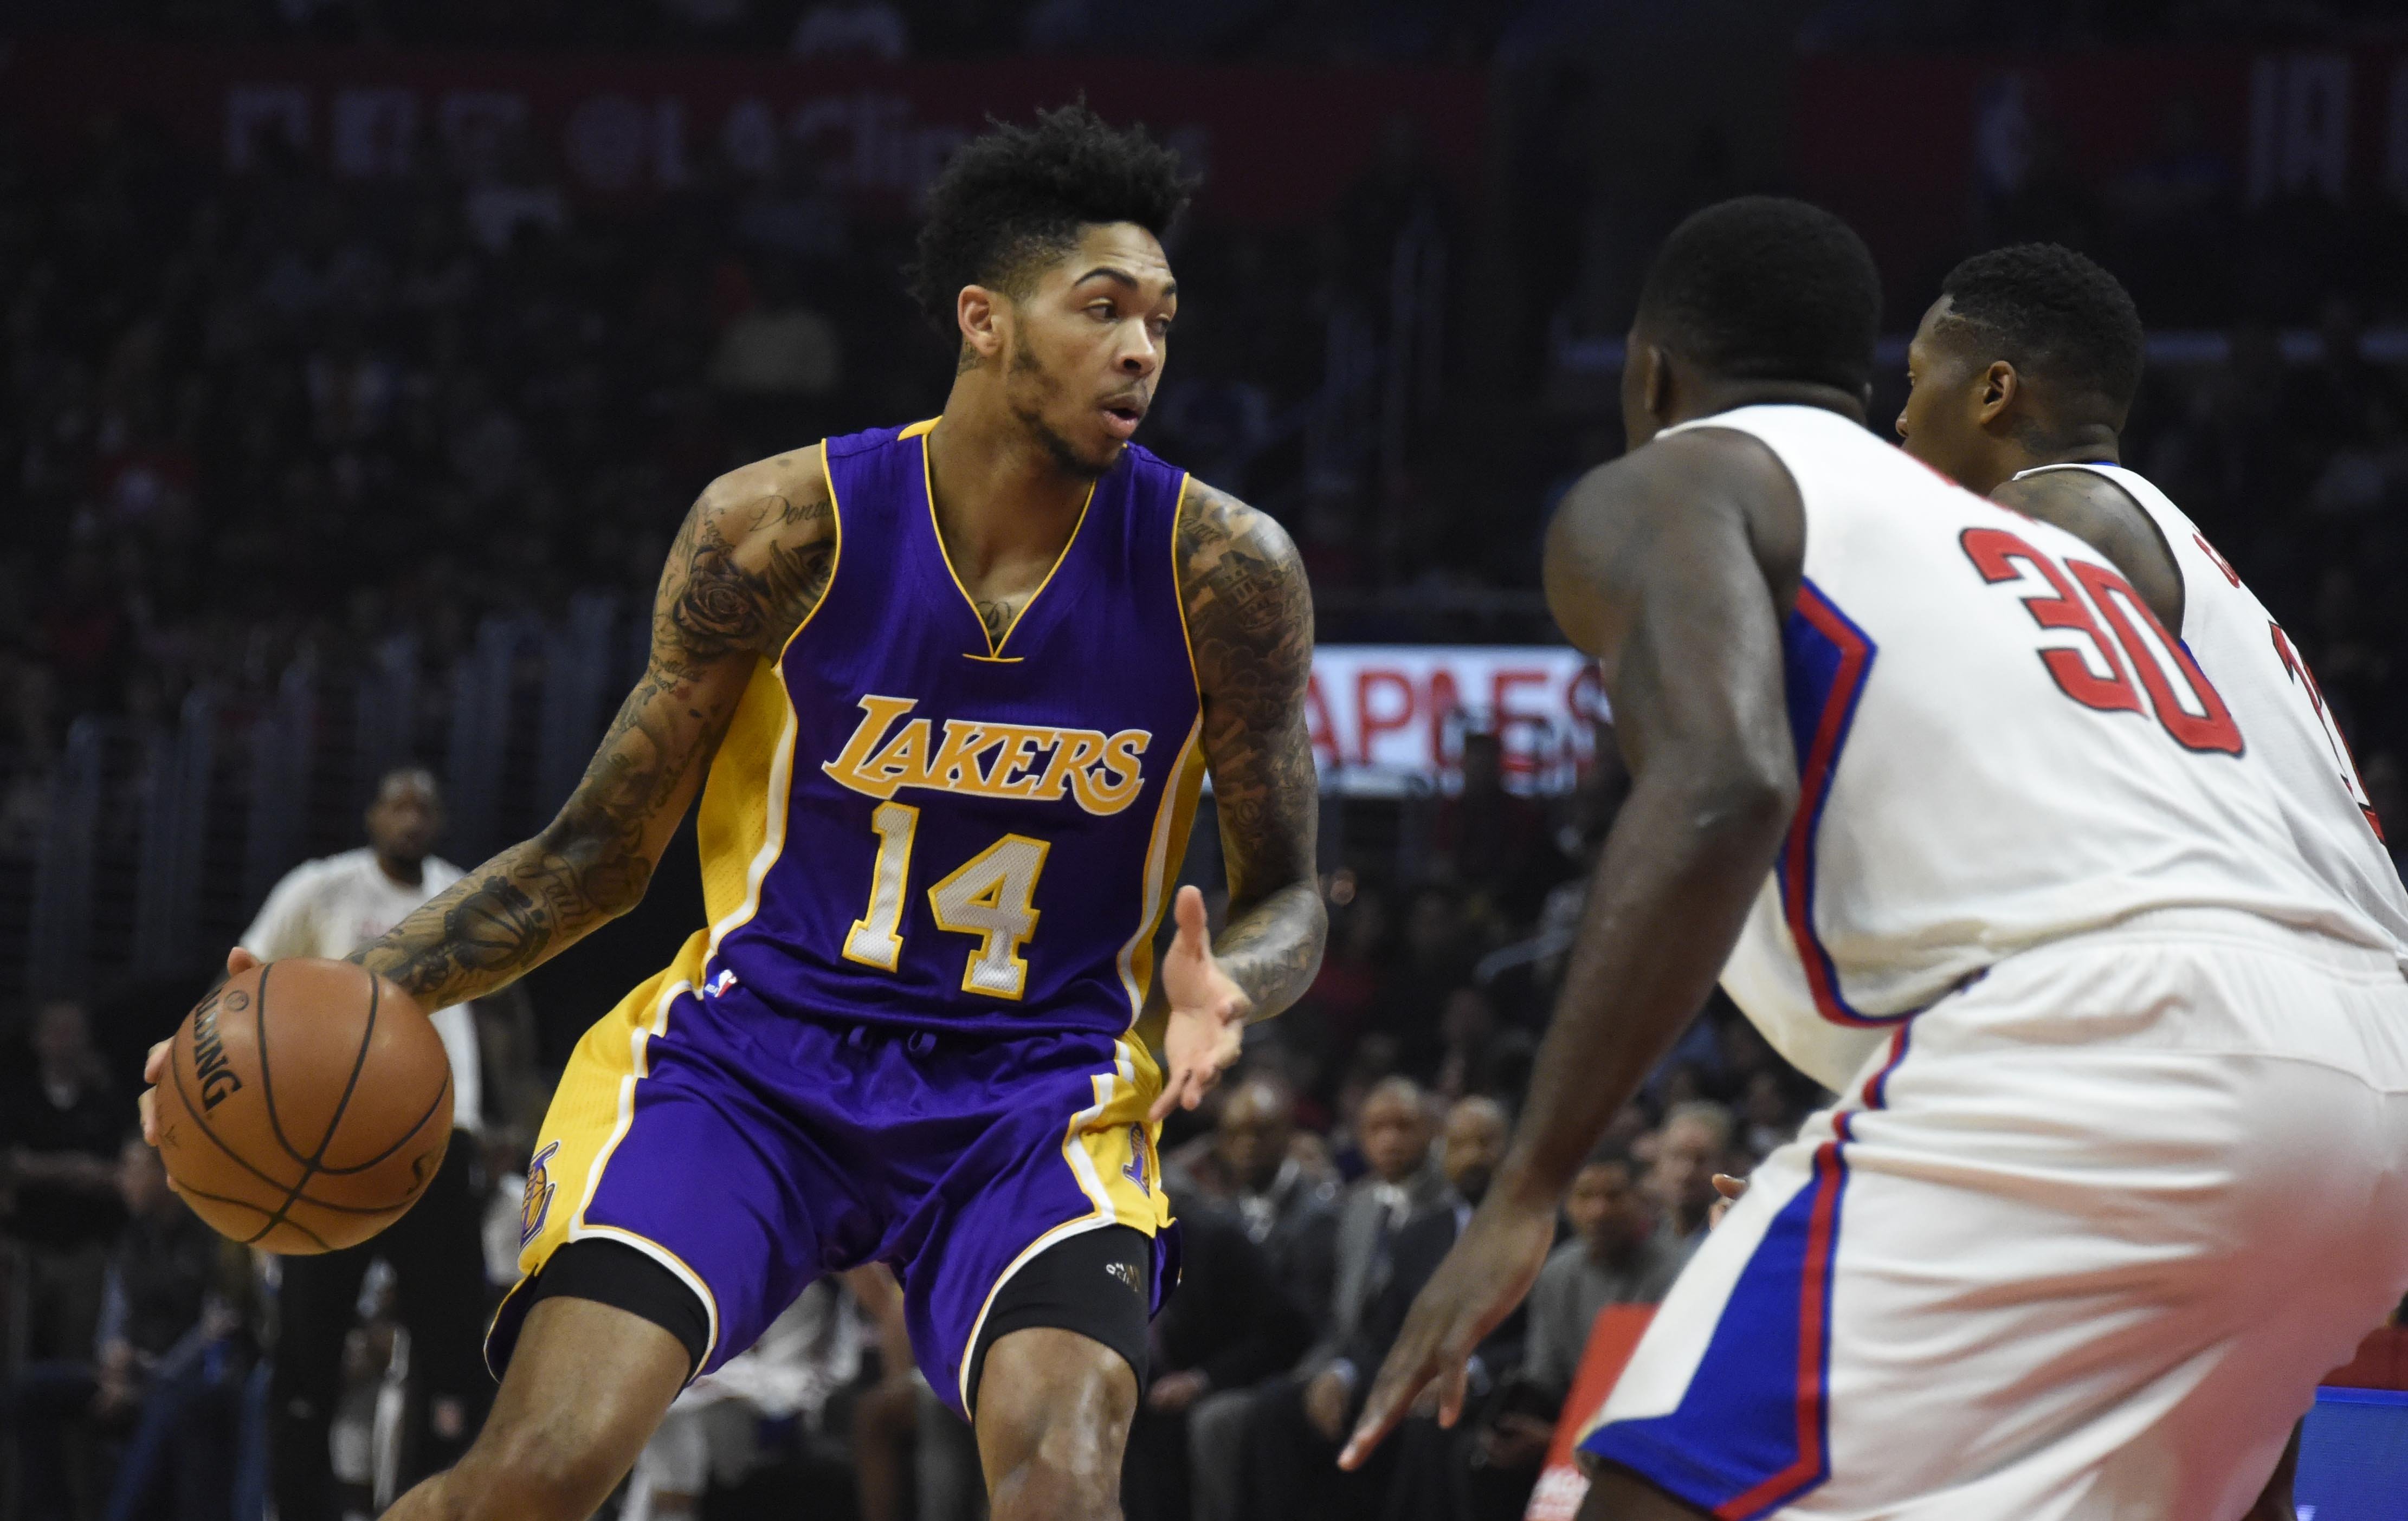 9809930-nba-los-angeles-lakers-at-los-angeles-clippers